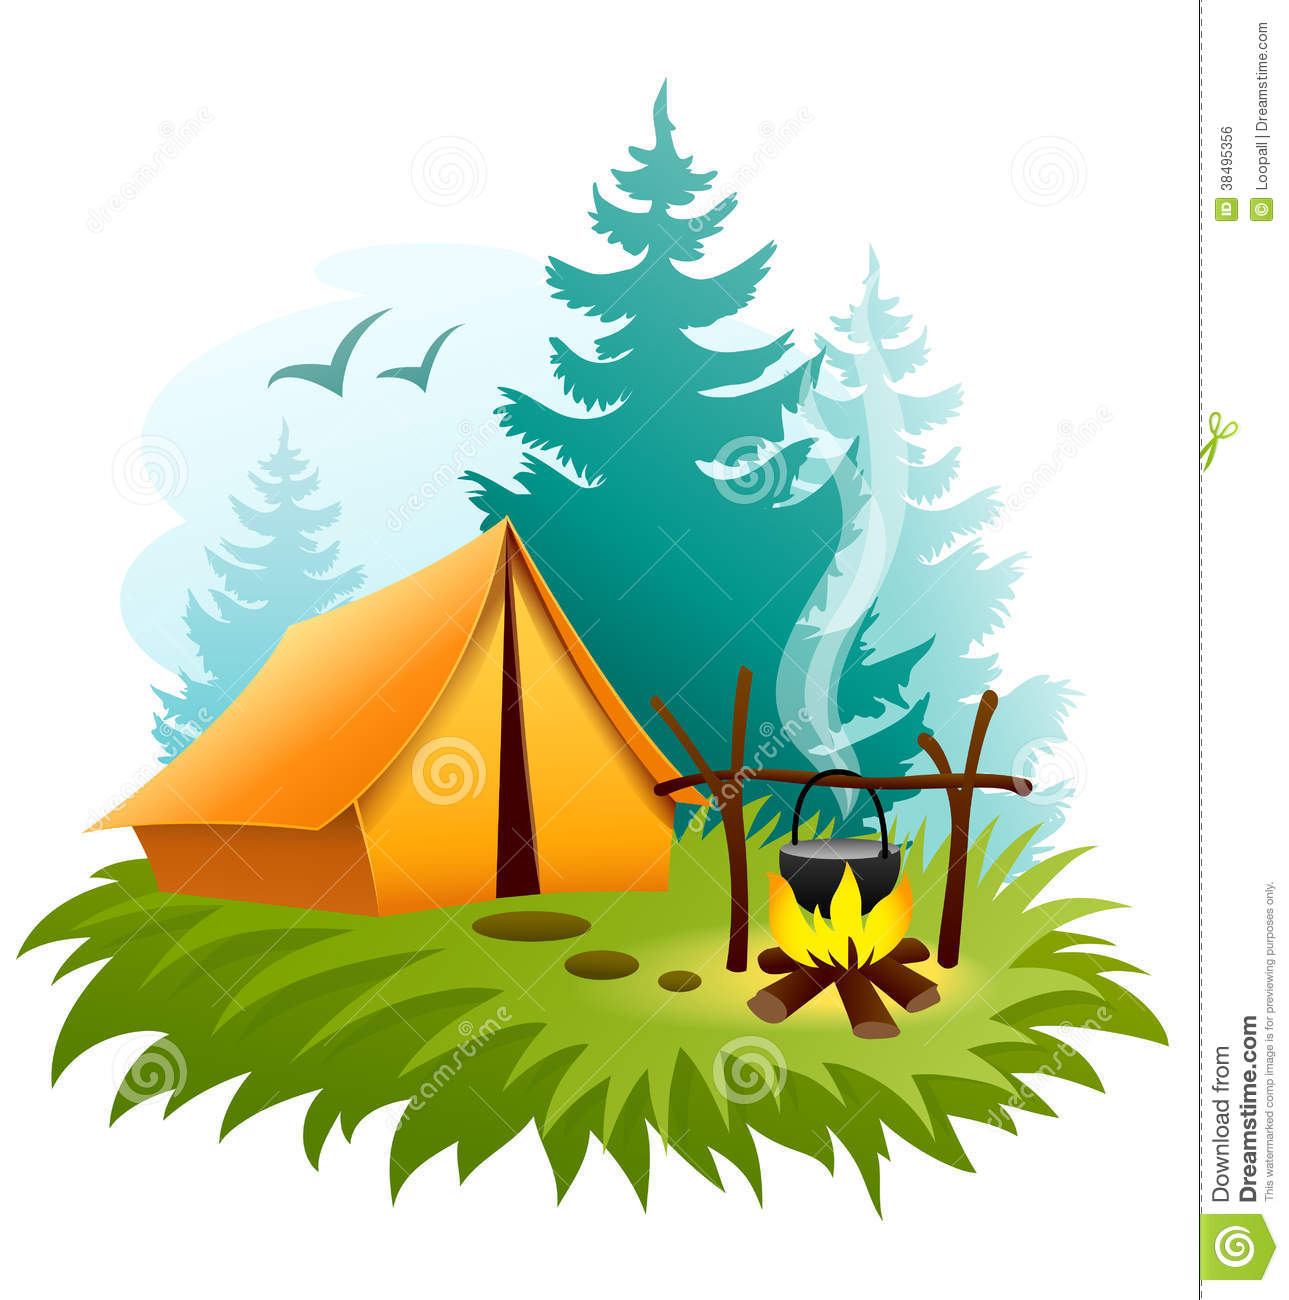 Campfire clipart family.  collection of tent